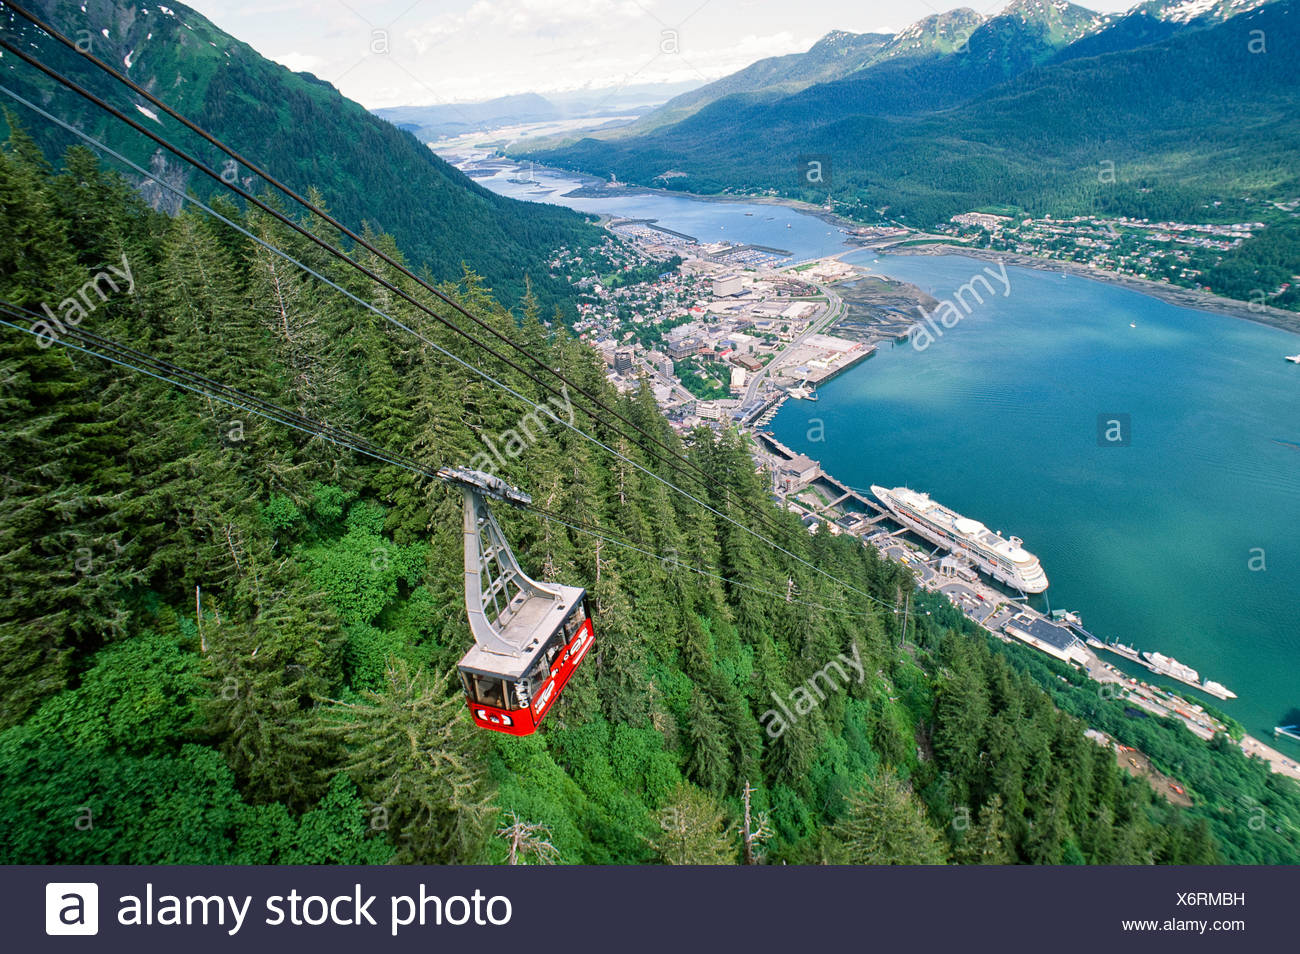 Alaska. Juneau. View of Gastineau Channel from Mt. Roberts tram. - Stock Image